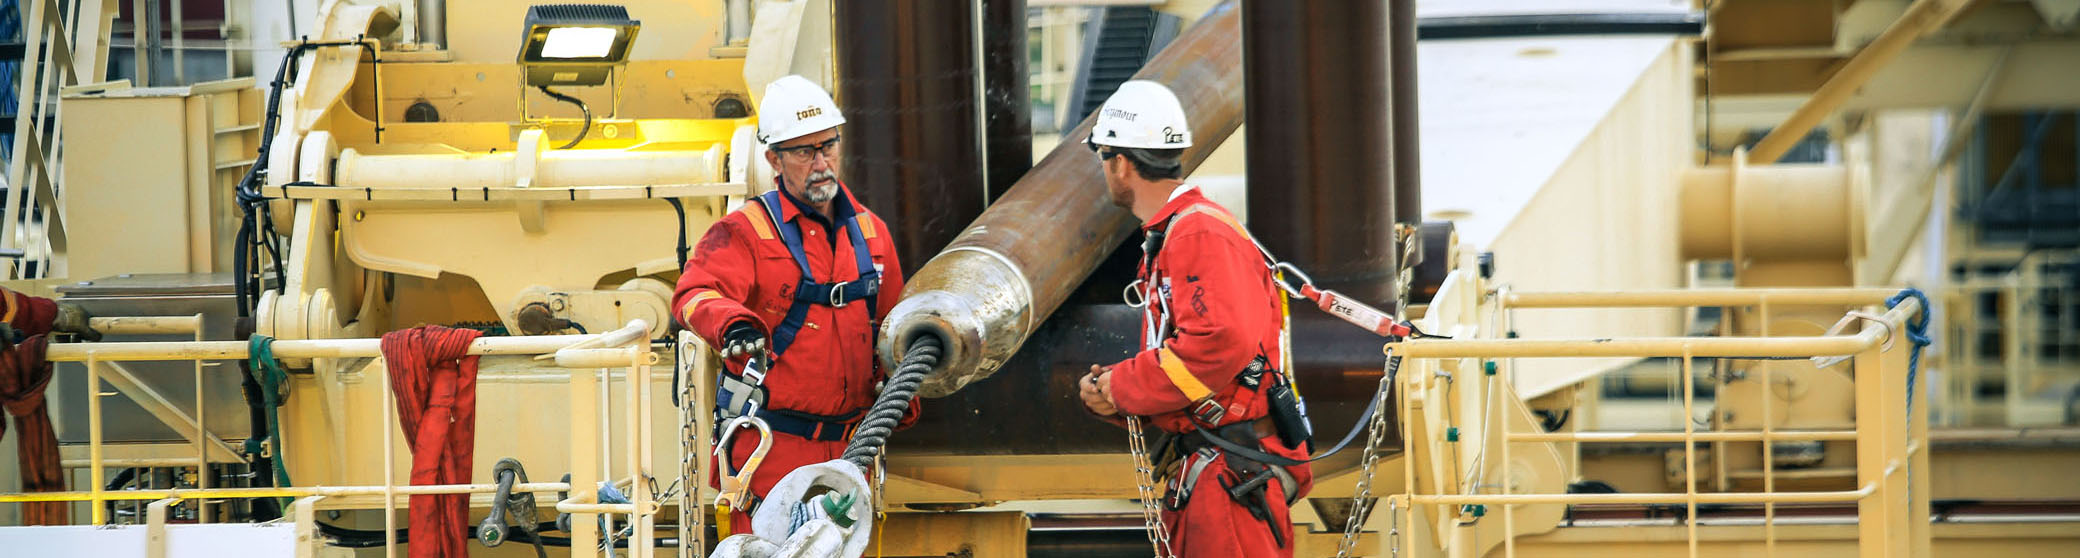 Pipeline installation Technip.jpg